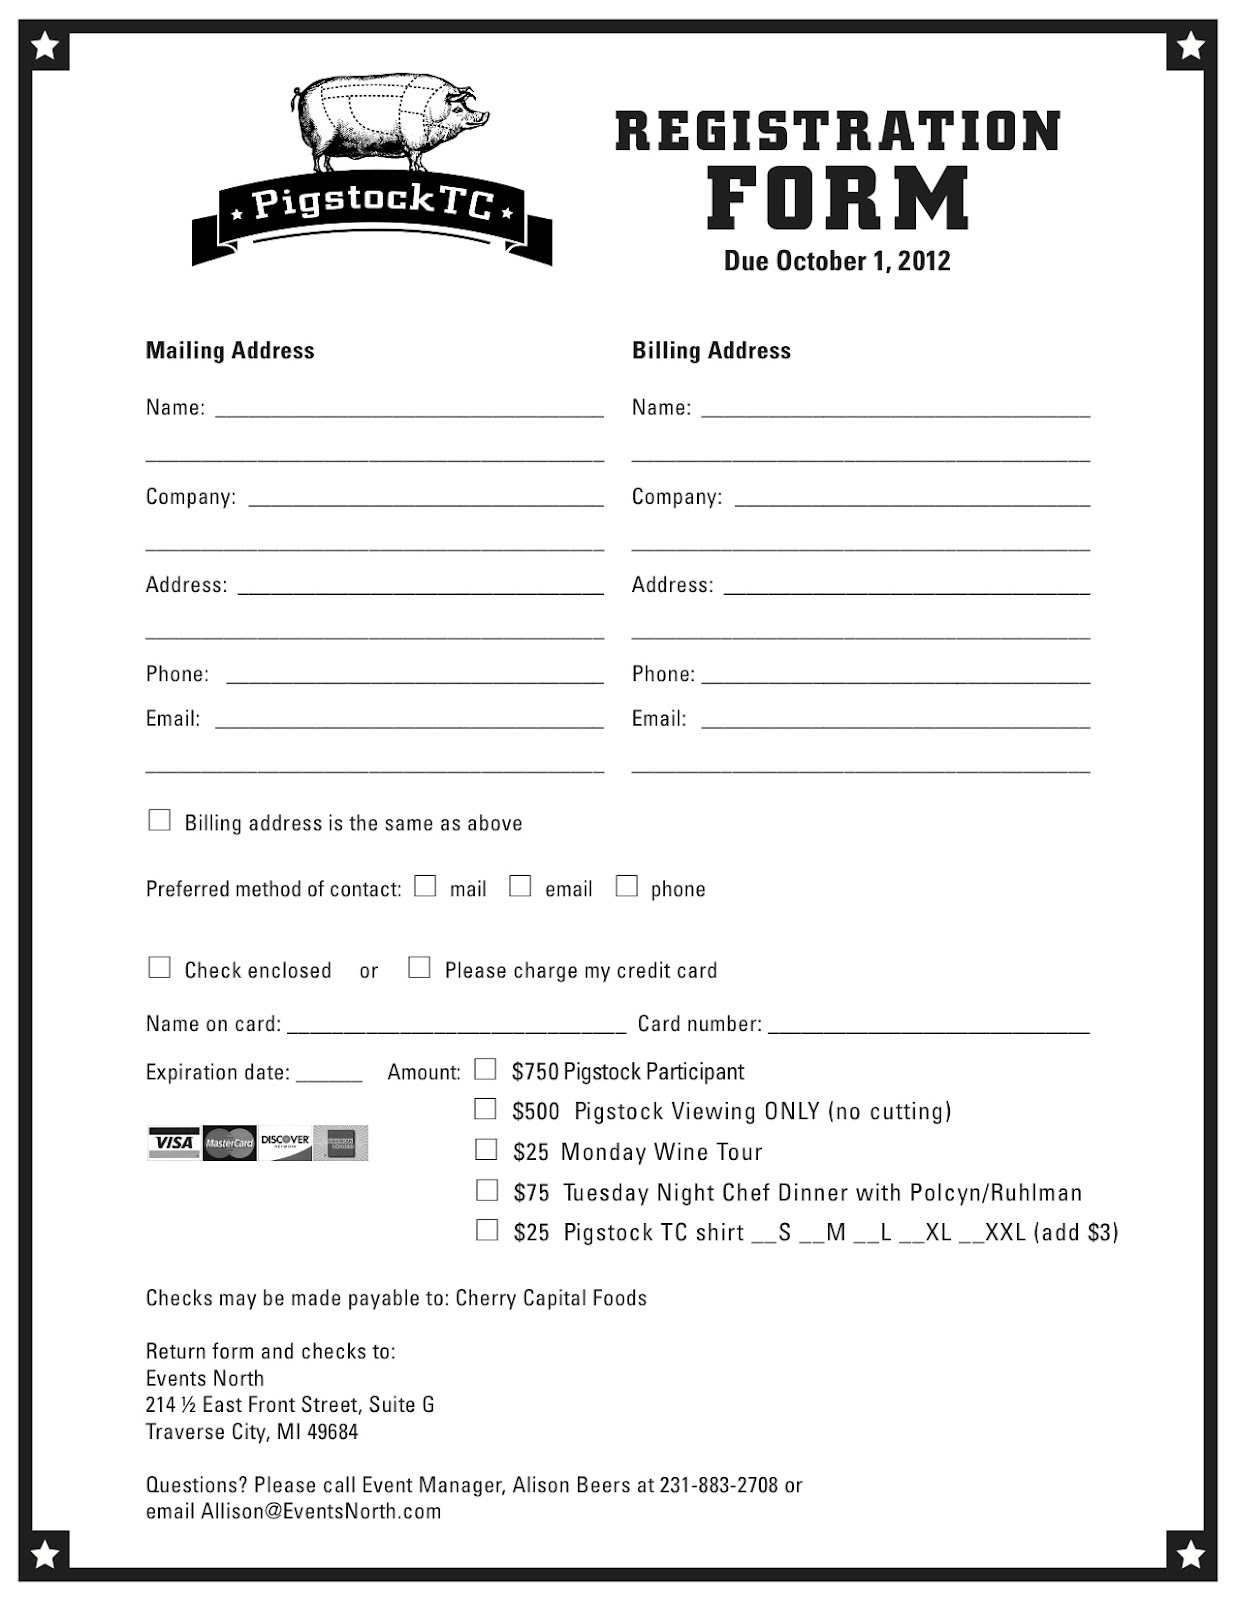 Application form registration form template printable for Sport registration form template